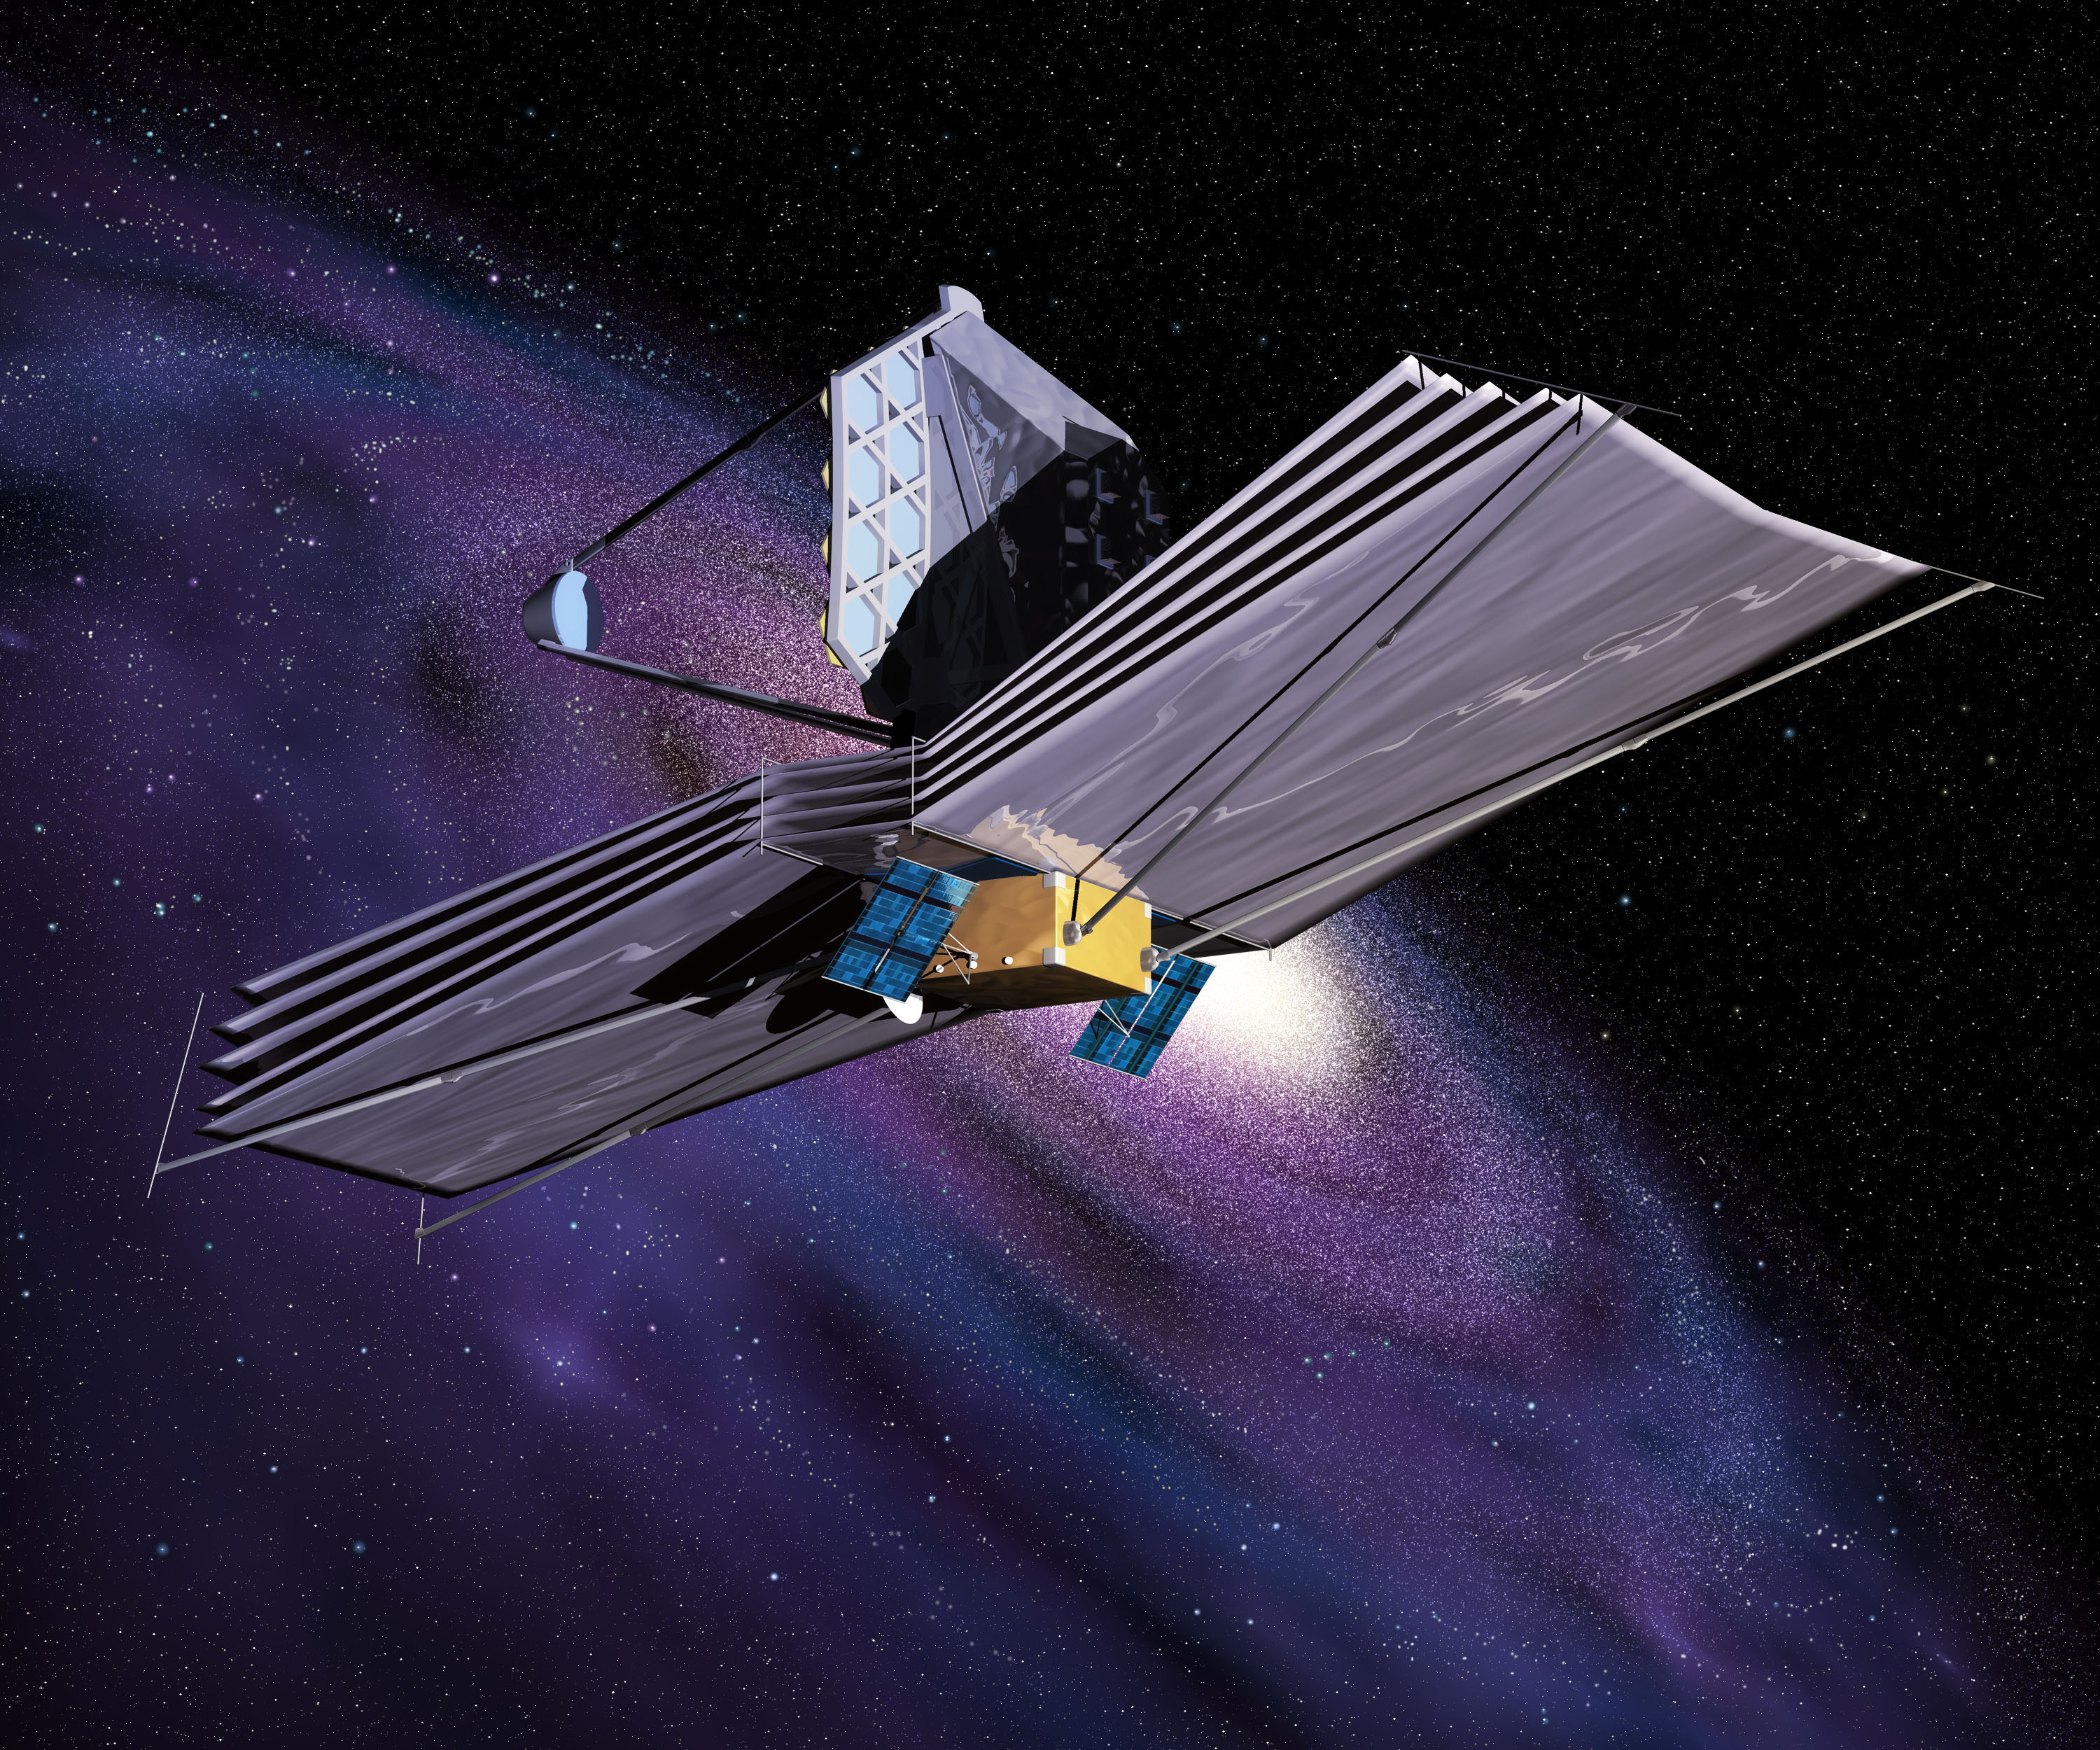 James Webb Space Telescope Costs Rise - Space News - redOrbit